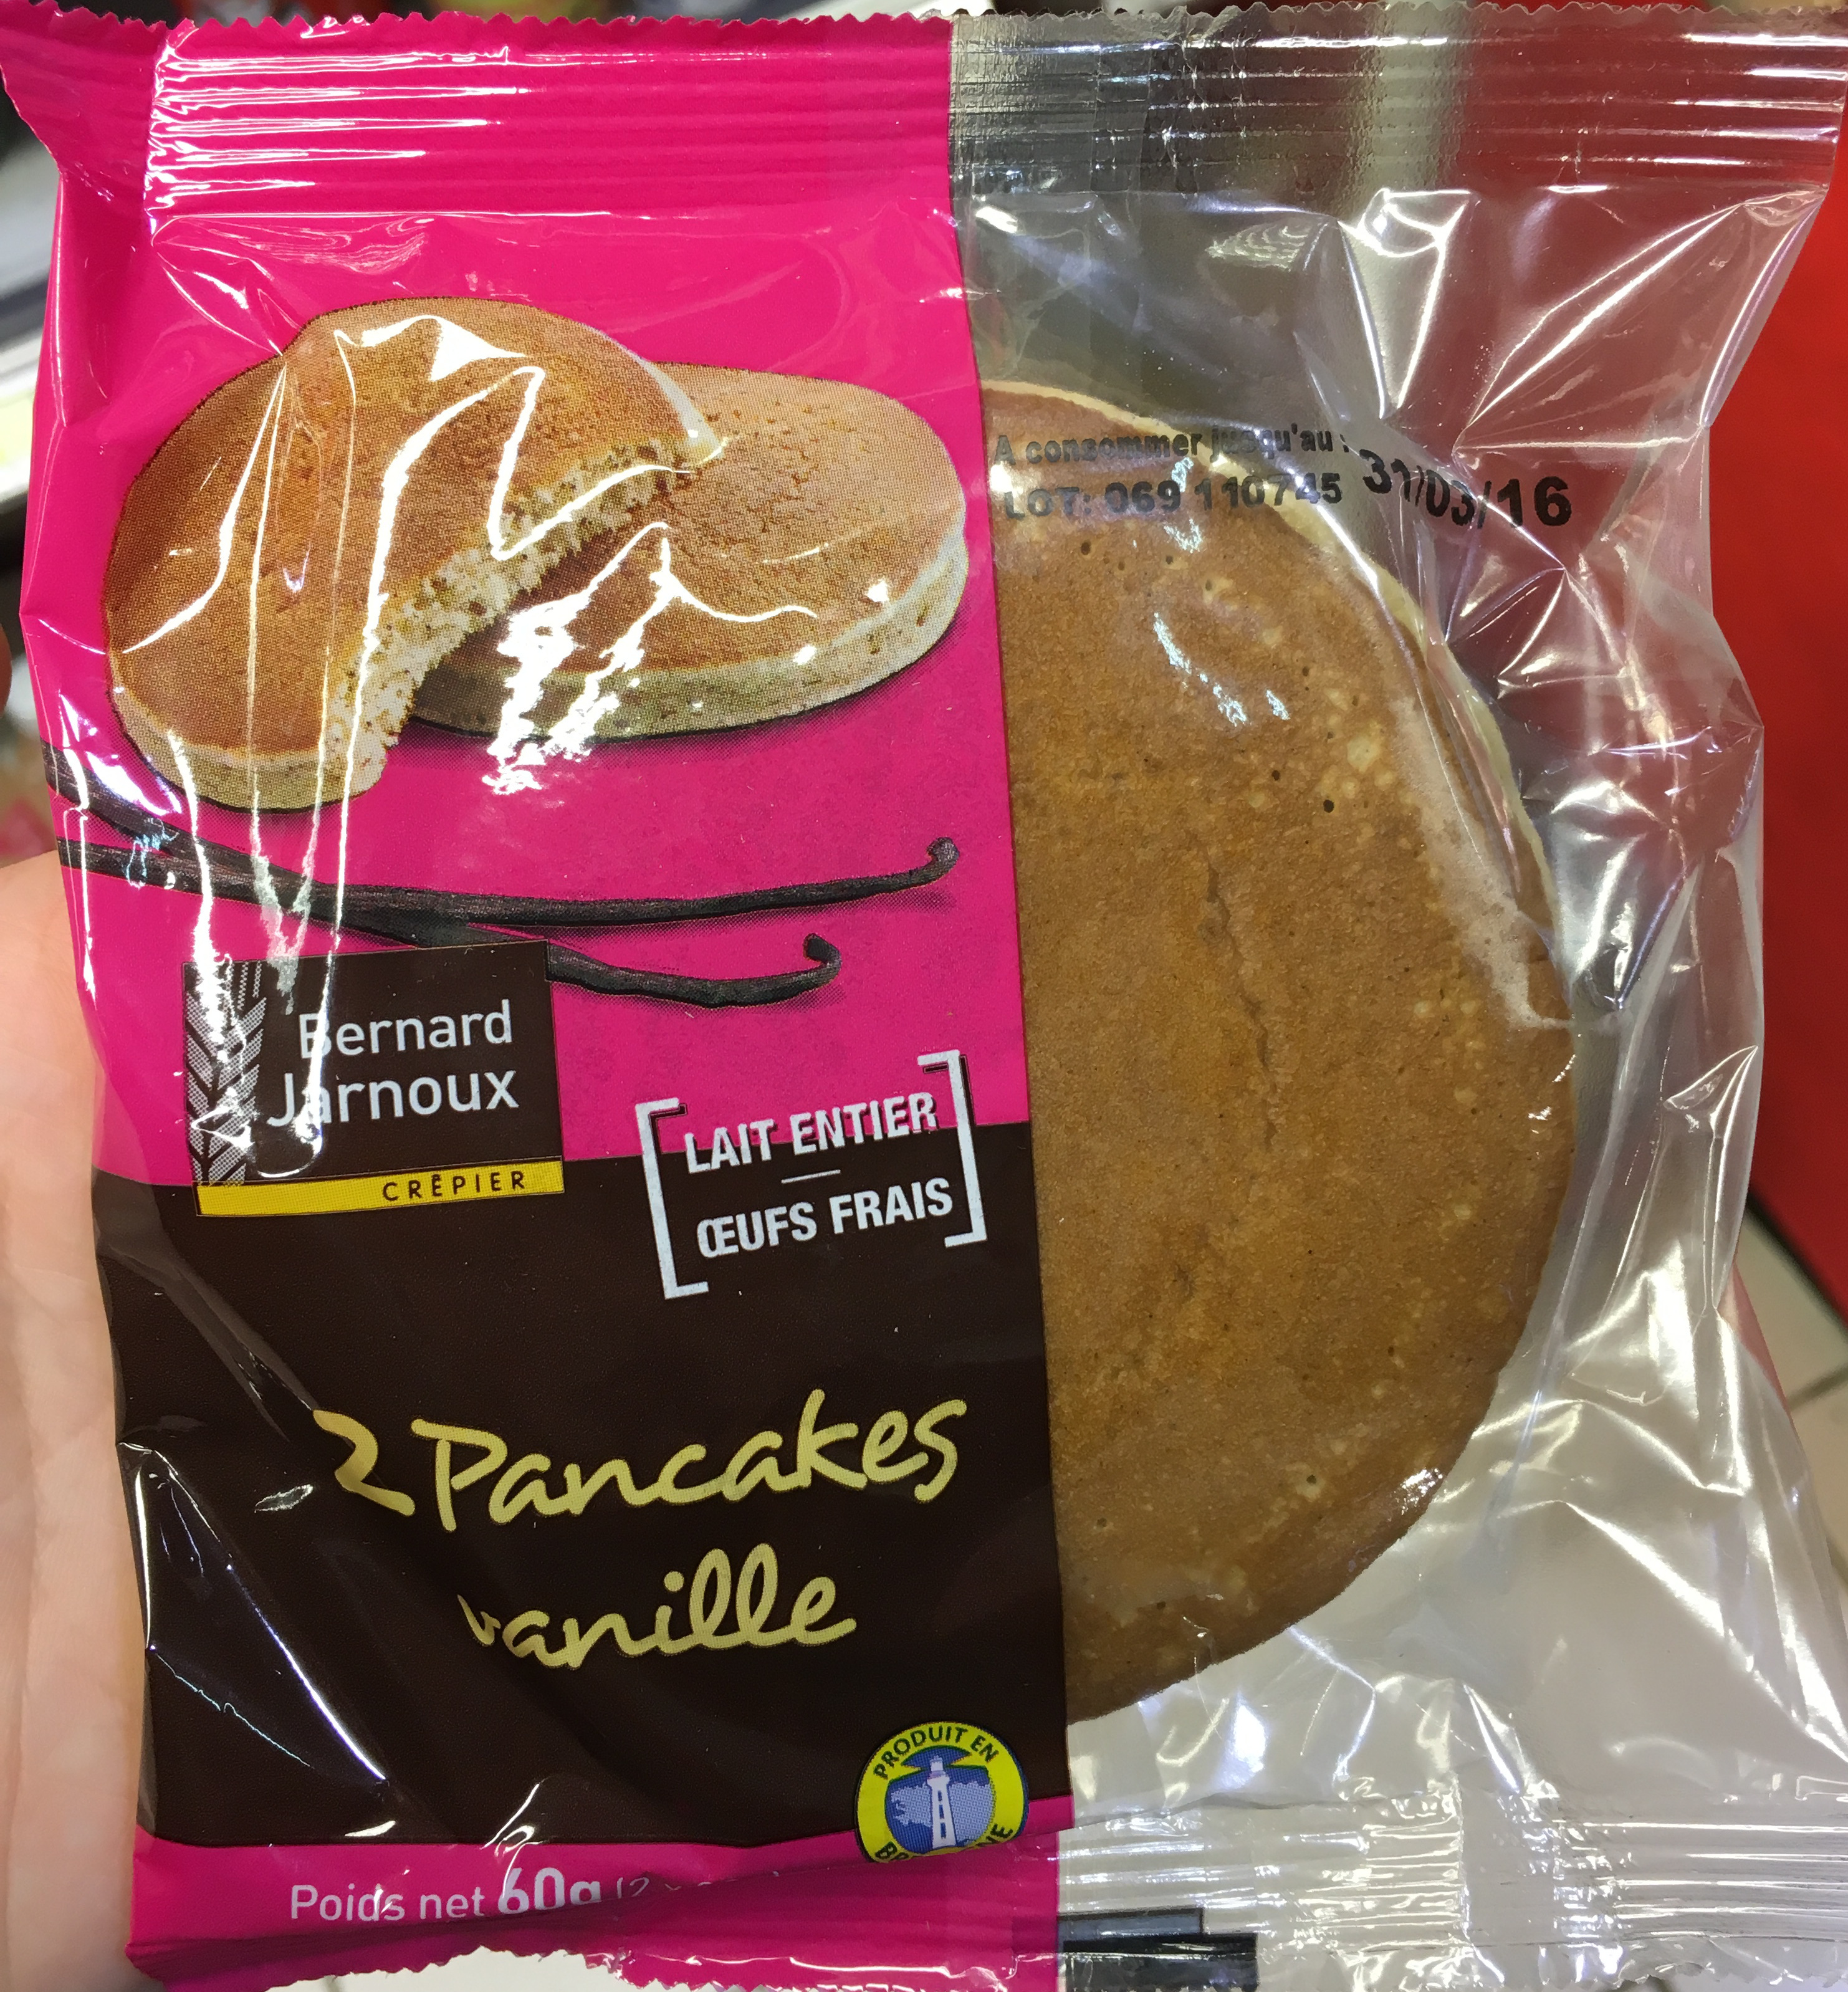 2 Pancakes vanille - Product - fr